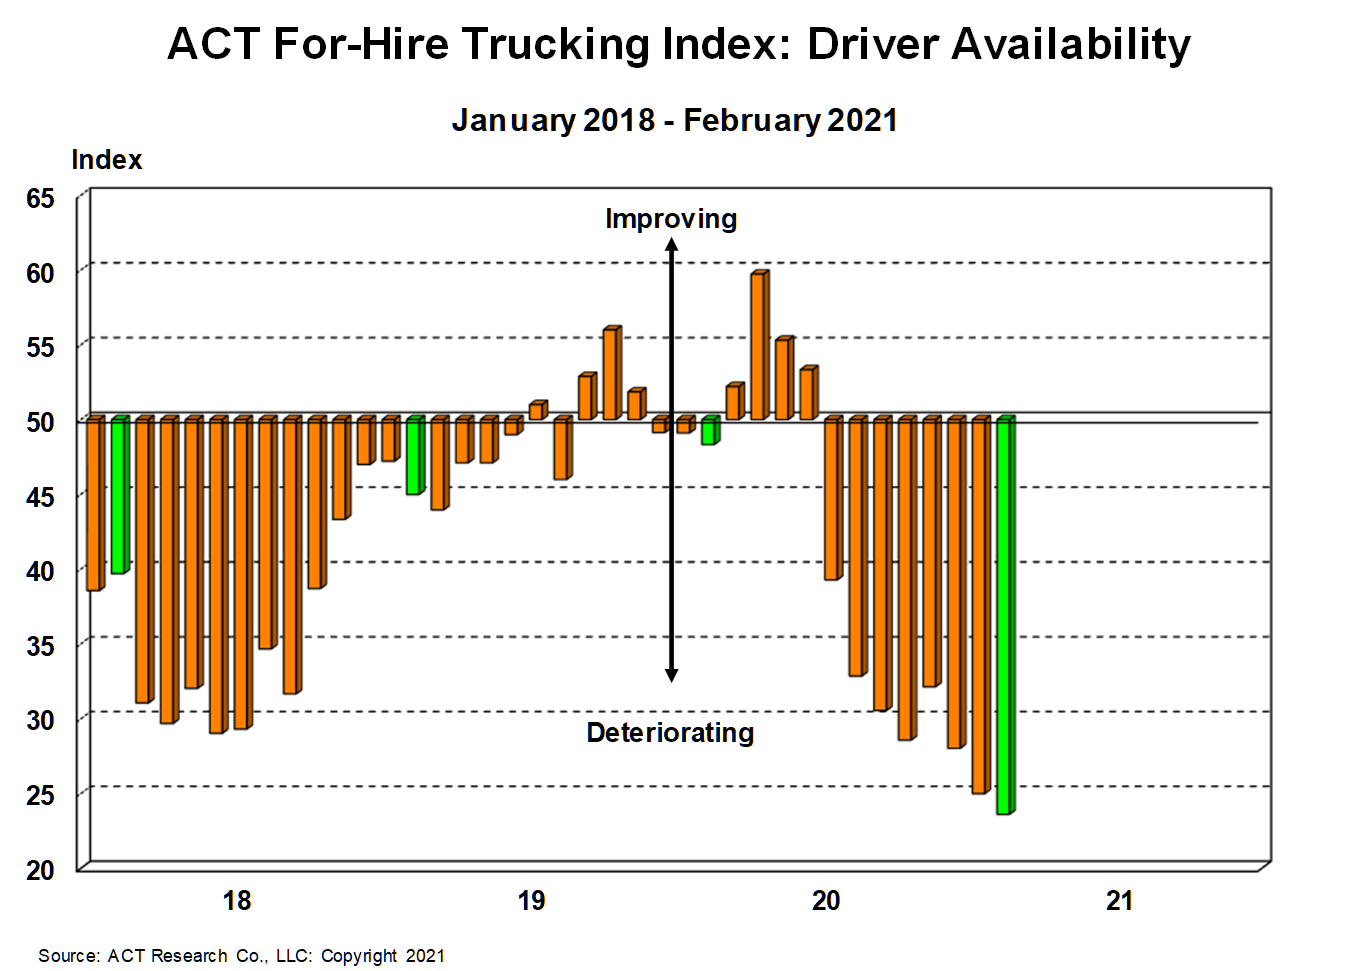 ACT Research Trucking Index Highlights Another New Low in Driver Availability